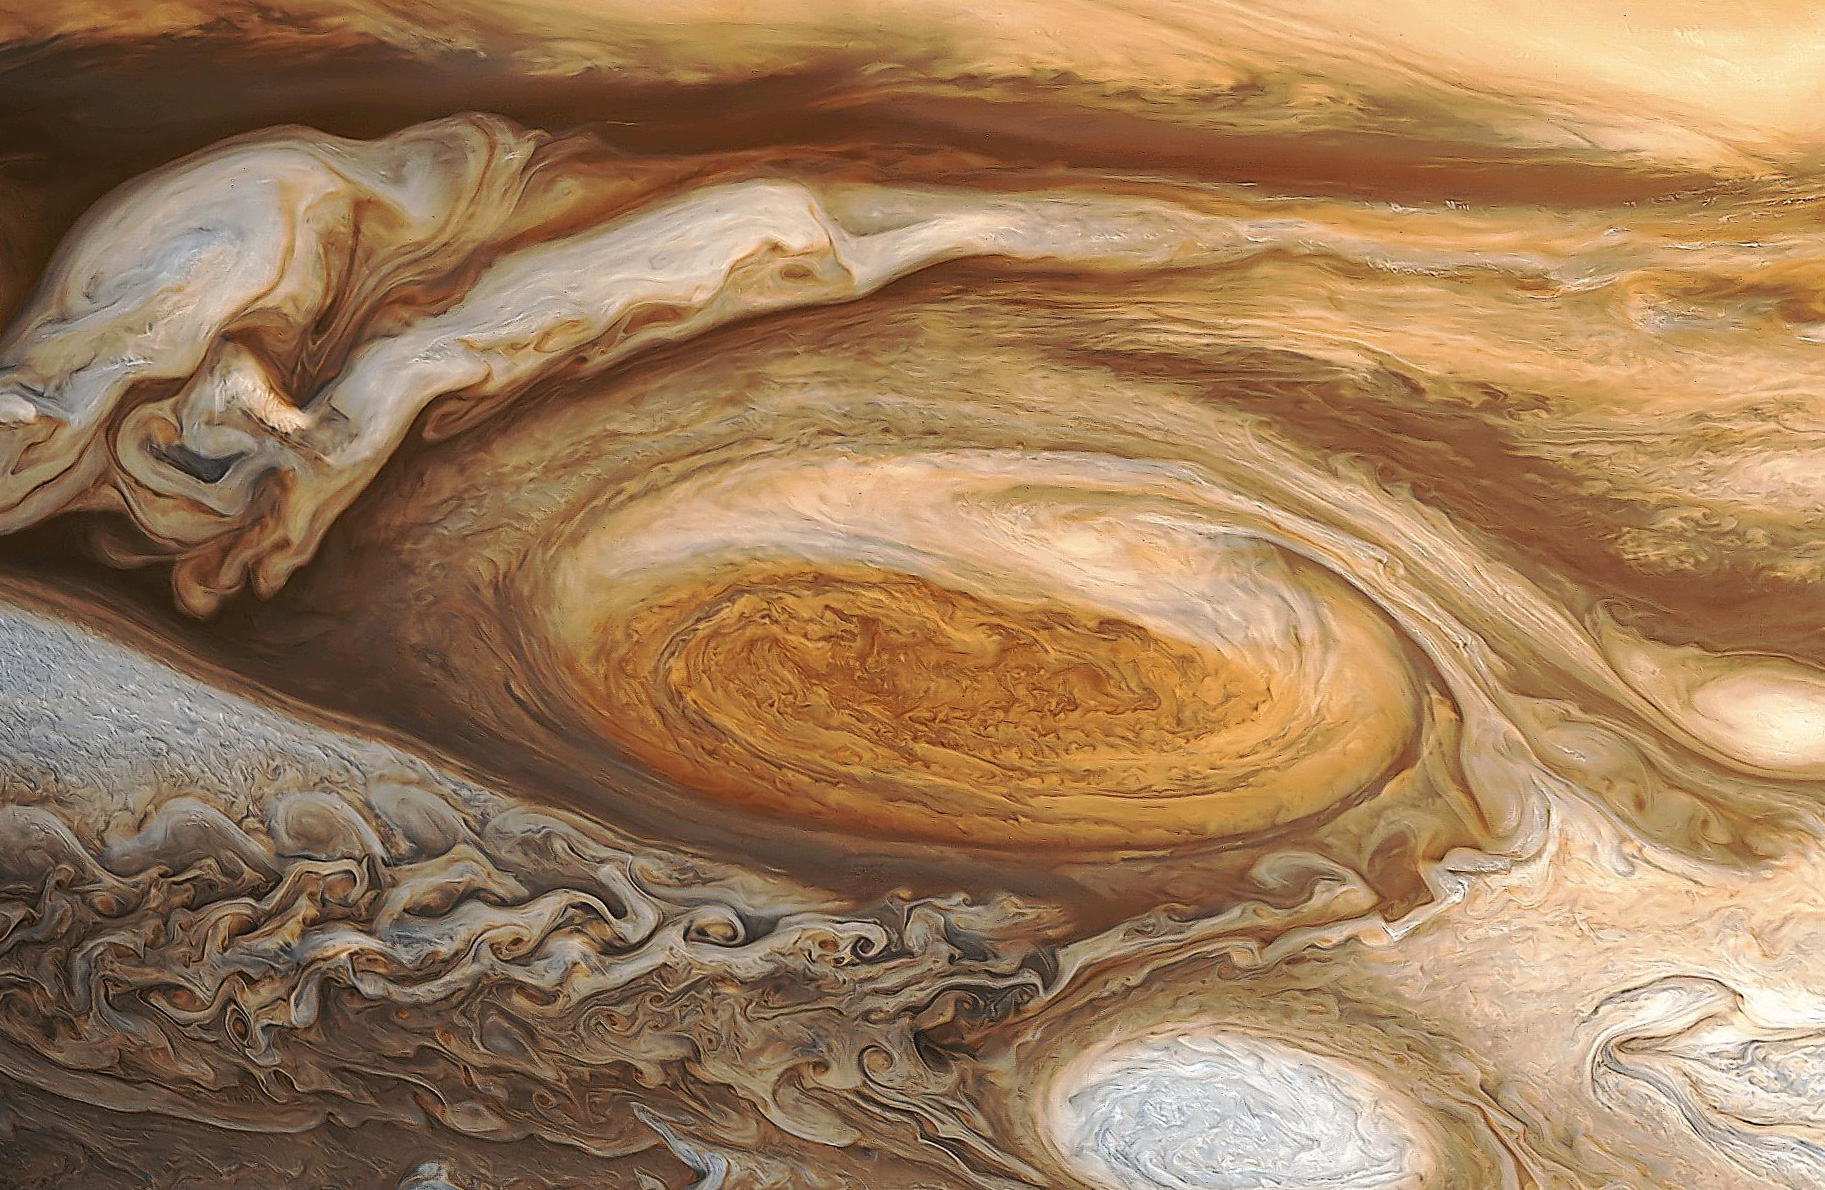 planet jupiter surface - photo #42